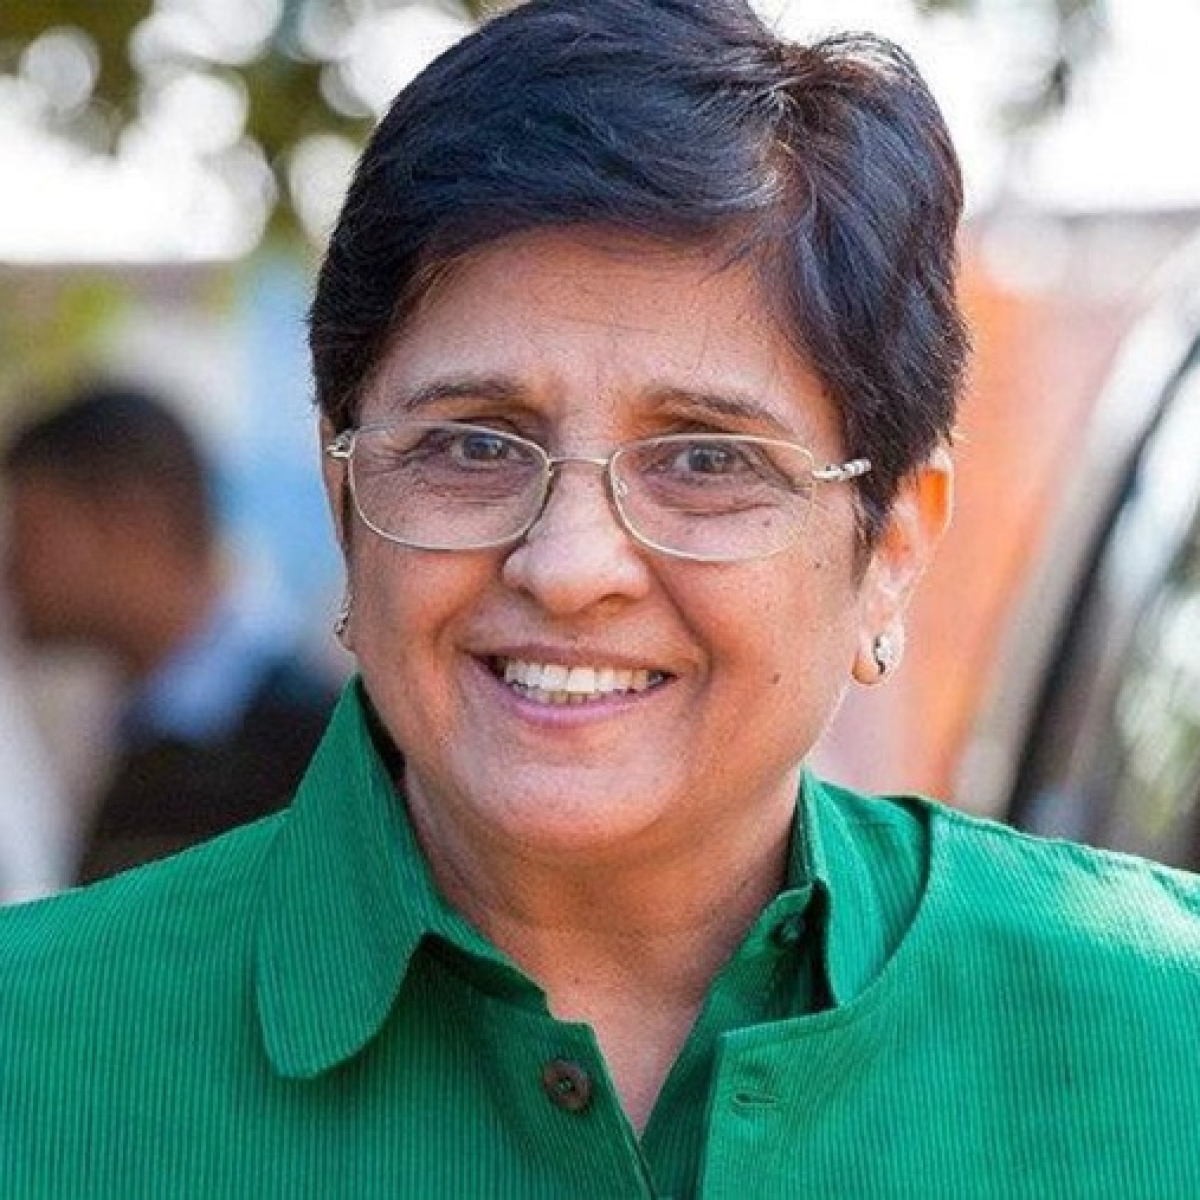 Kiran Bedi gives bizarre clarification after WhatsApp University video on Sun chanting Om